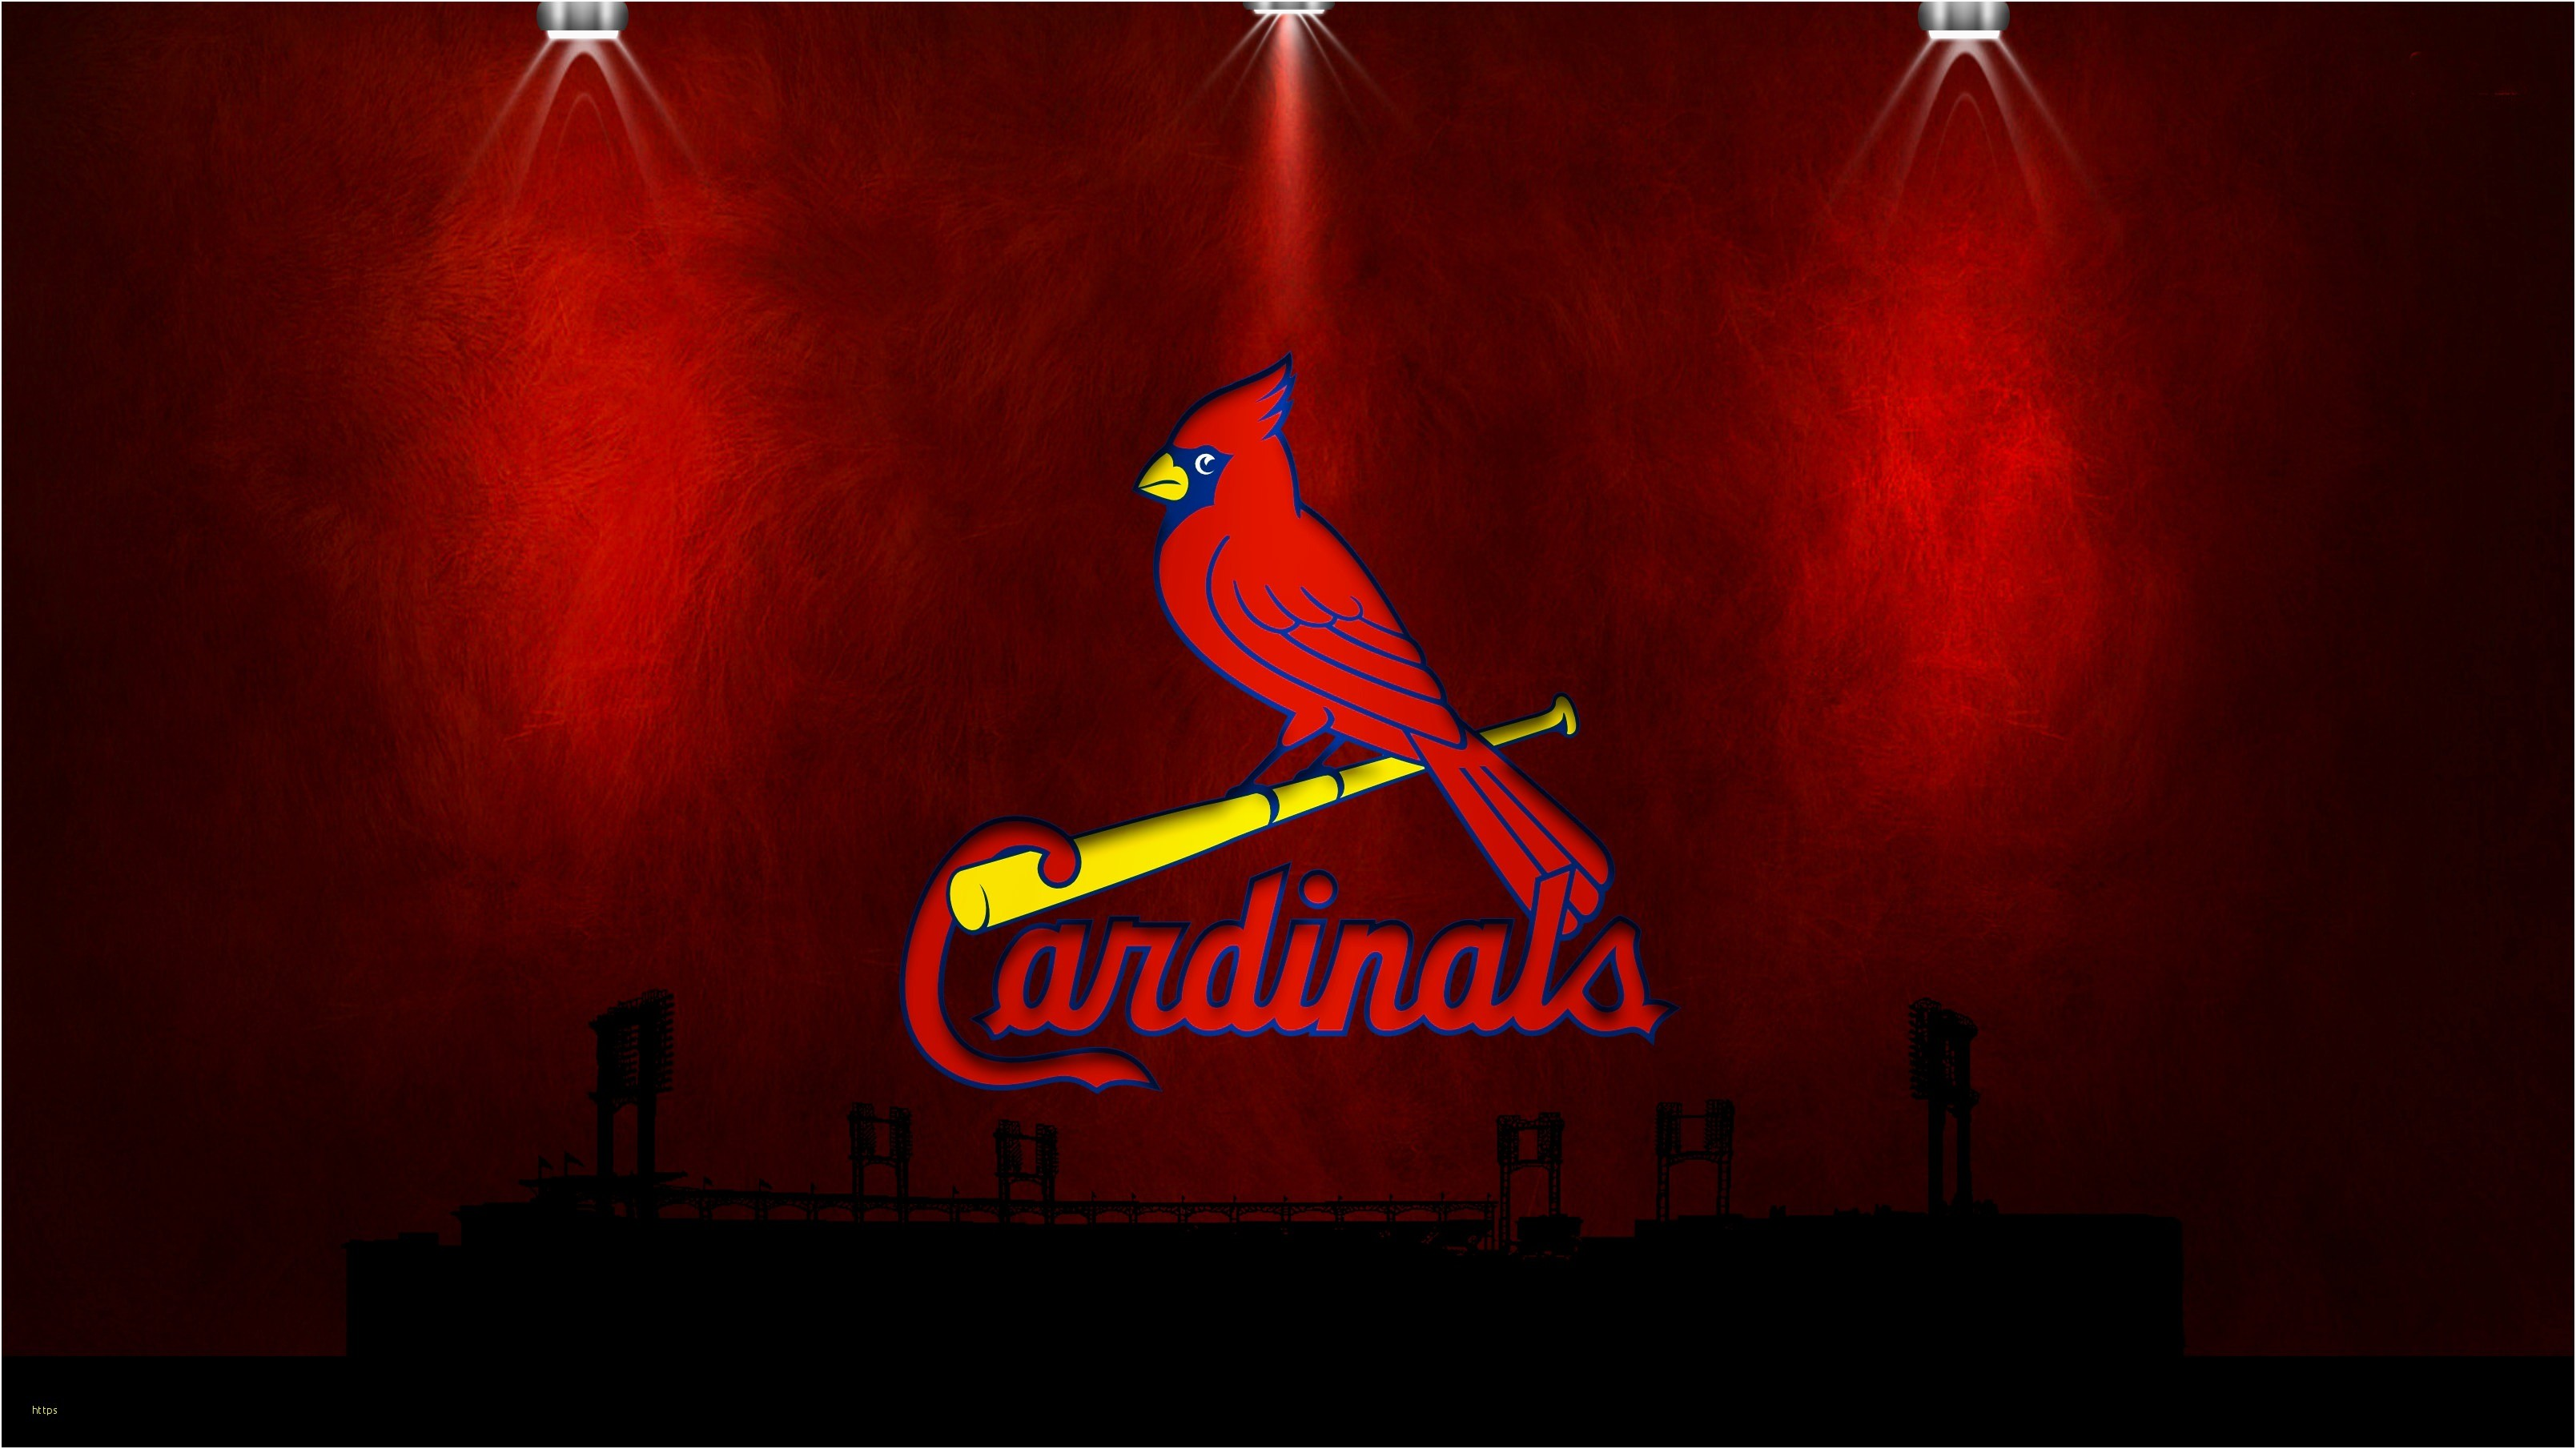 St Louis Cardinals Wallpaper 75 Images